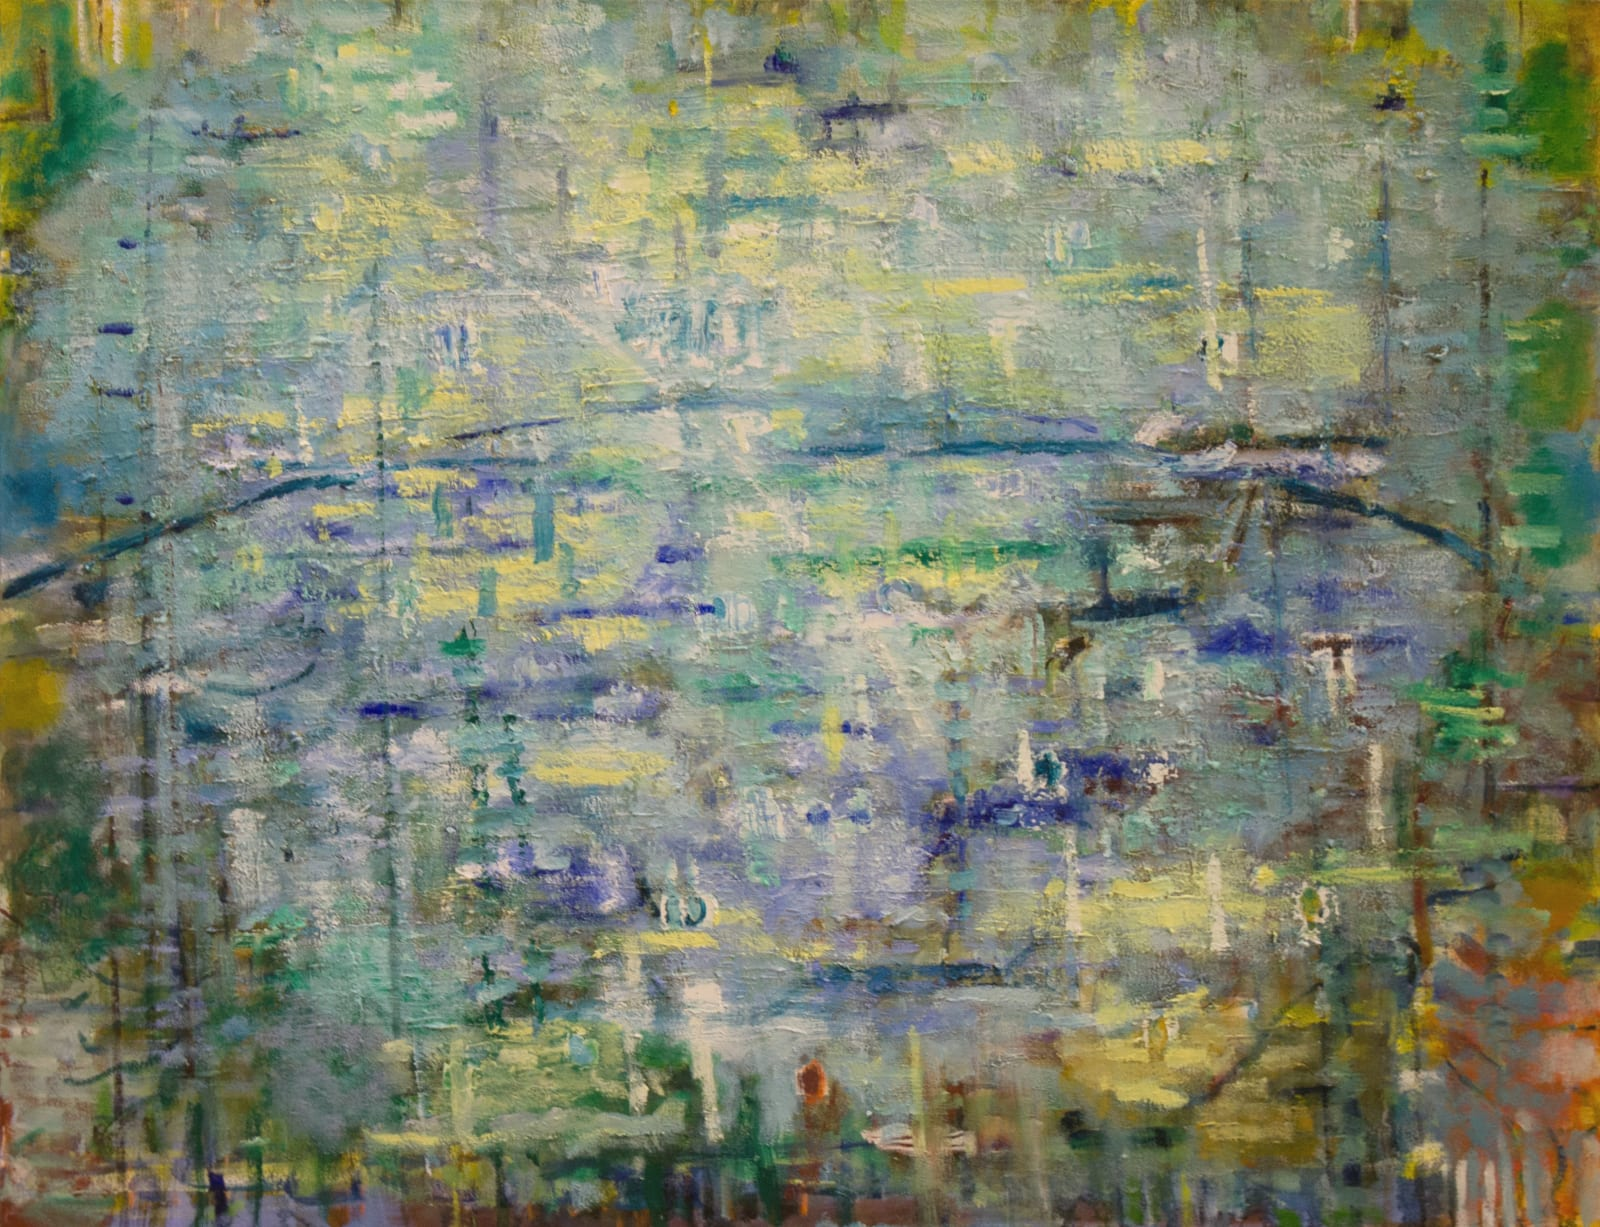 Frances Hynes - Marking Time: Of Land and Sea